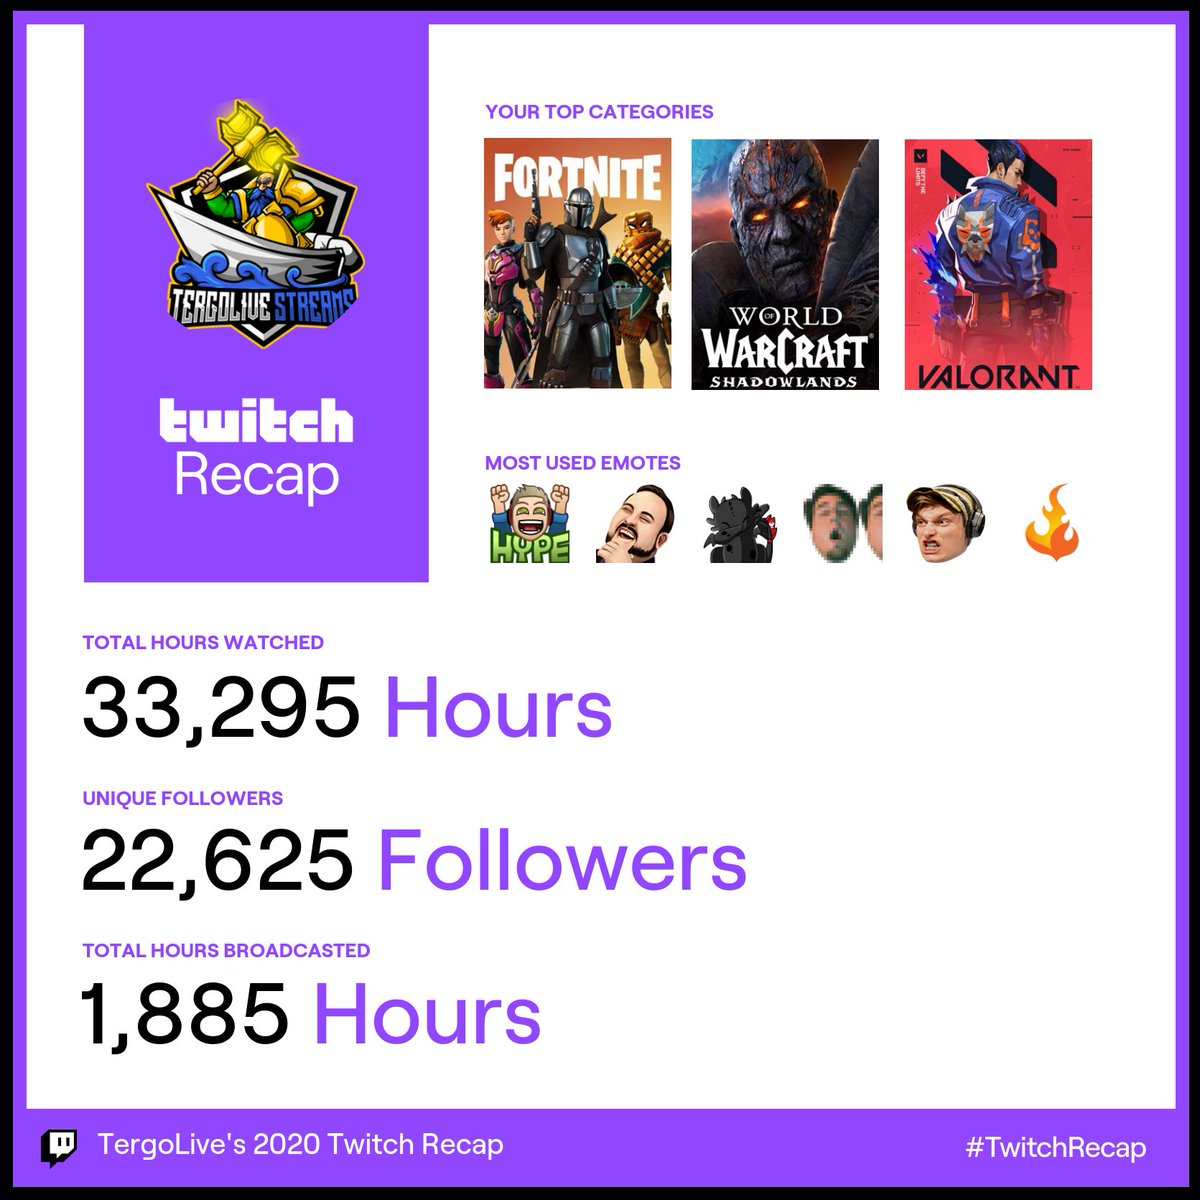 This Is AWESOME! #TwitchRecap   Thank you @Twitch for doing something like this! This is amazing to see the growth and the love from the community last year amongst everything happening! I love you guys! 😃 Cheers to a good 2021!!